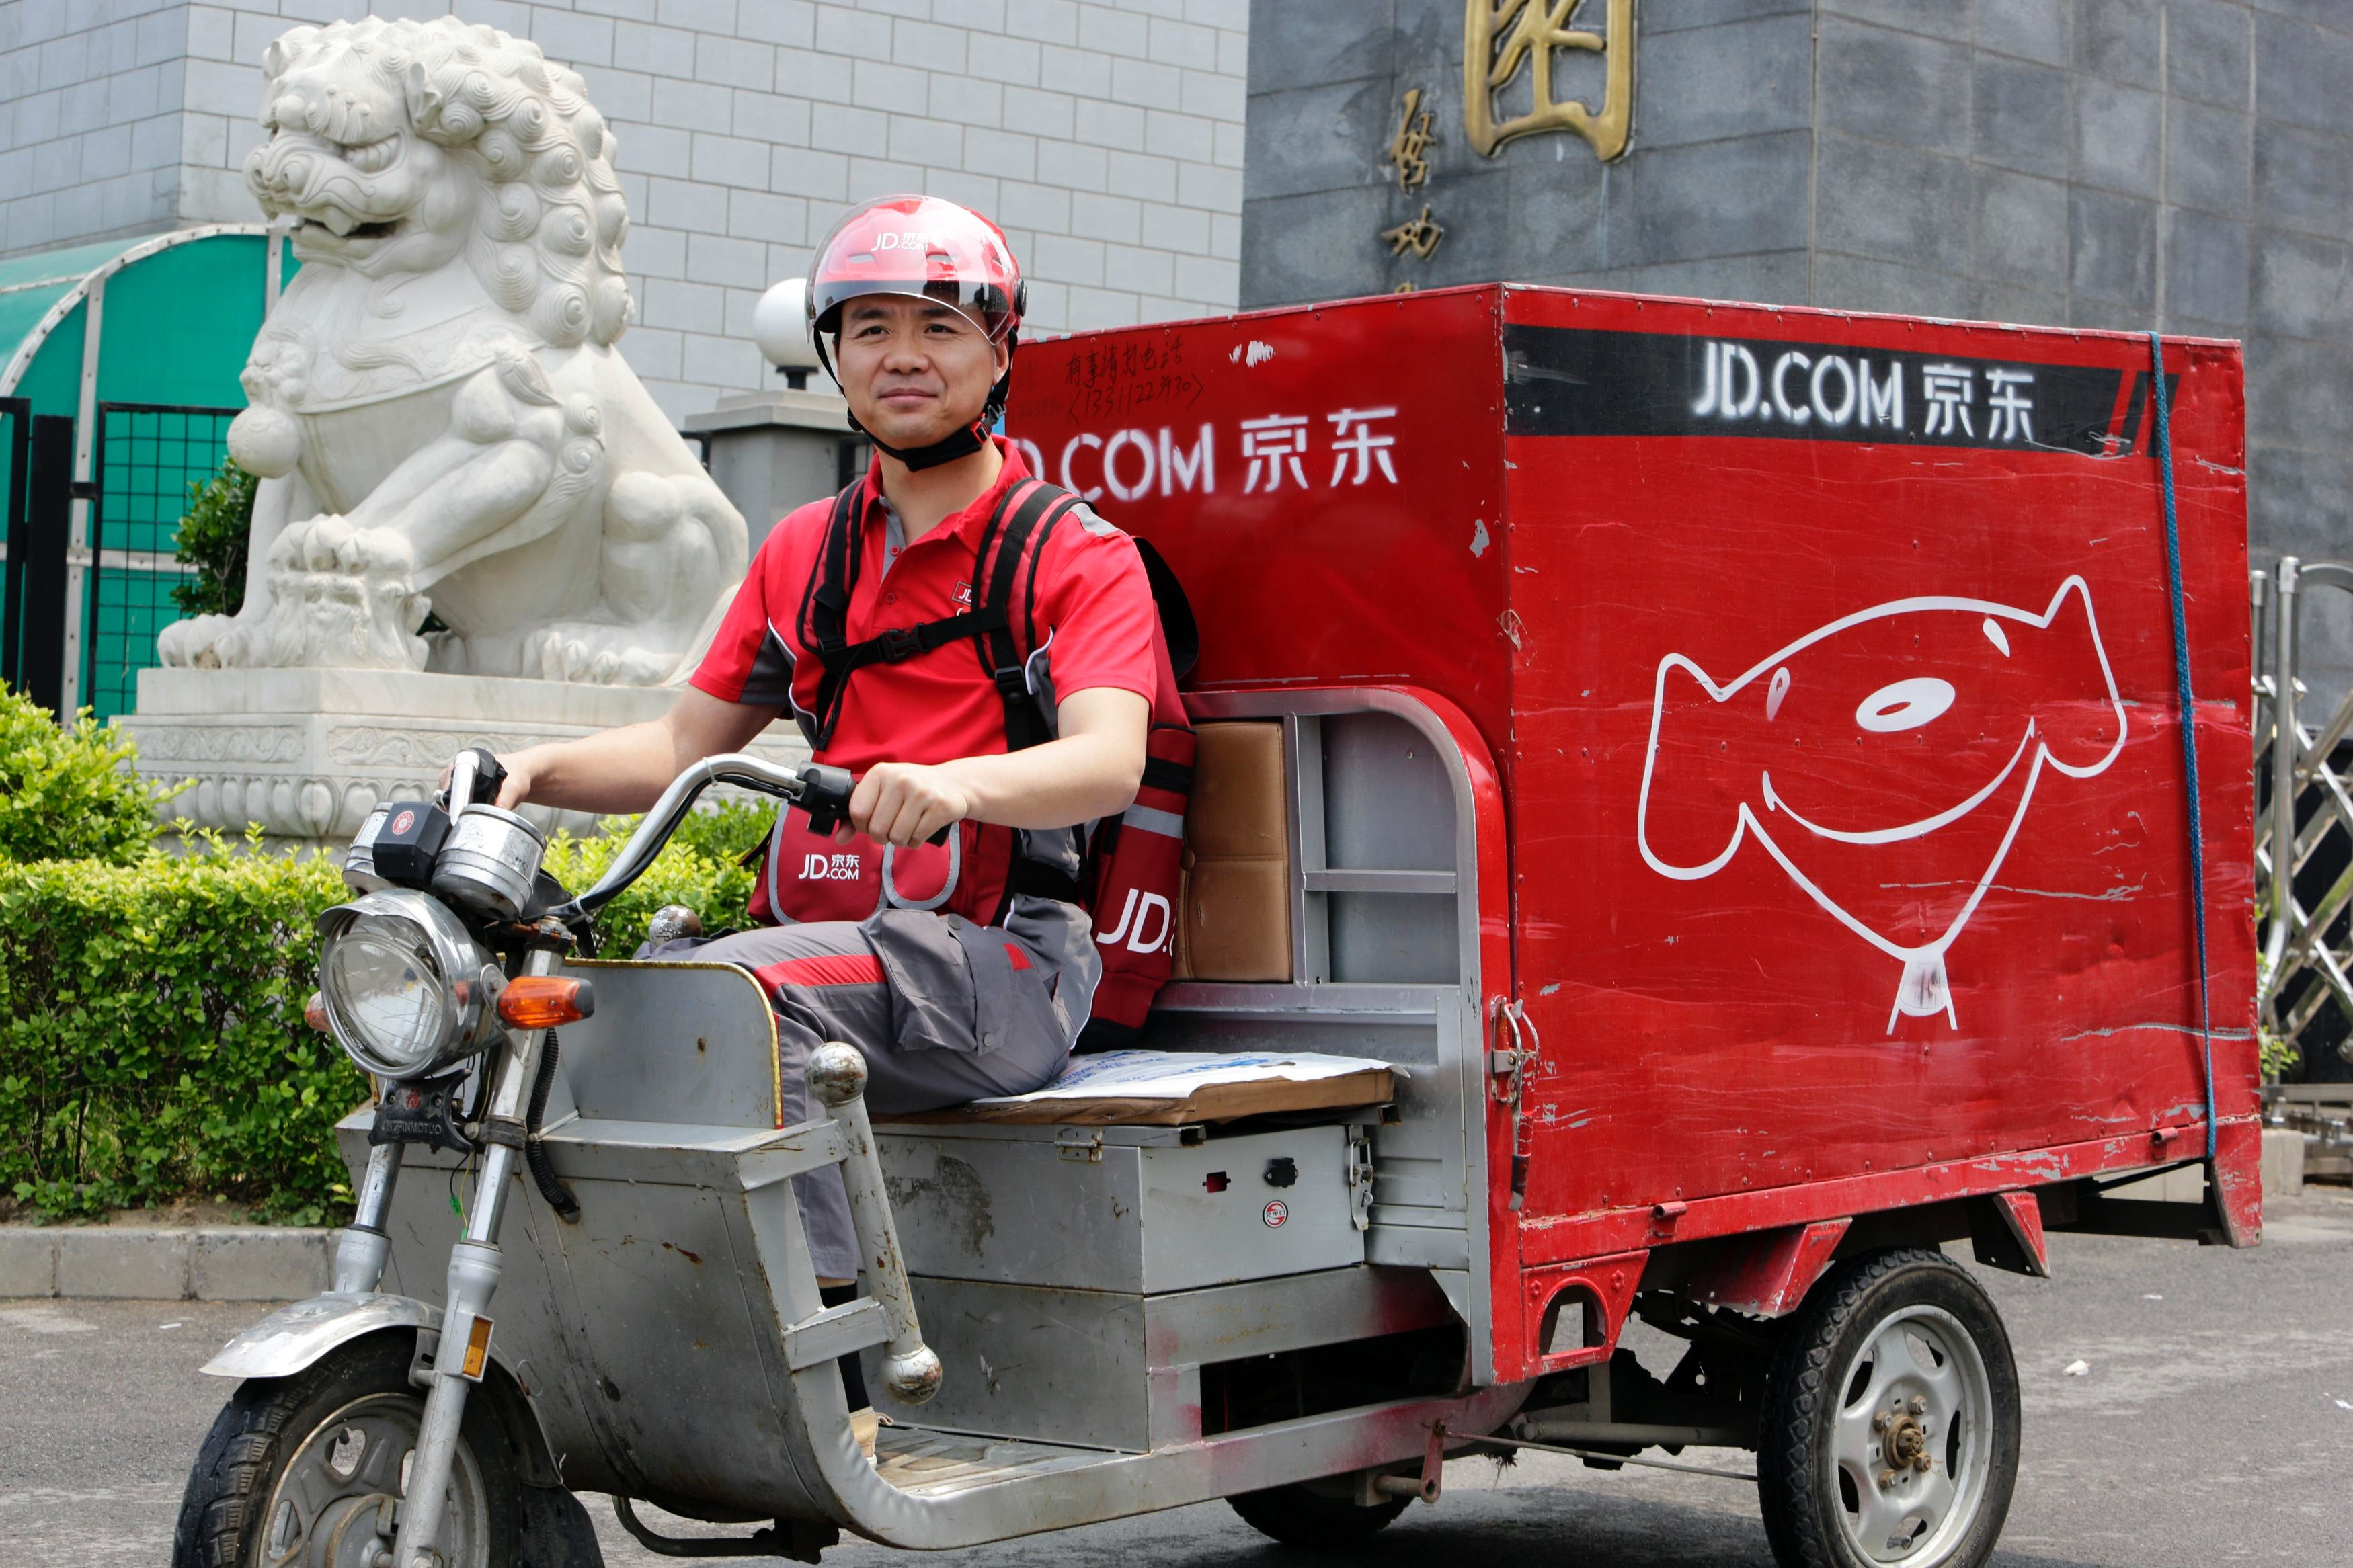 JD.com delivery | Source: Reuters